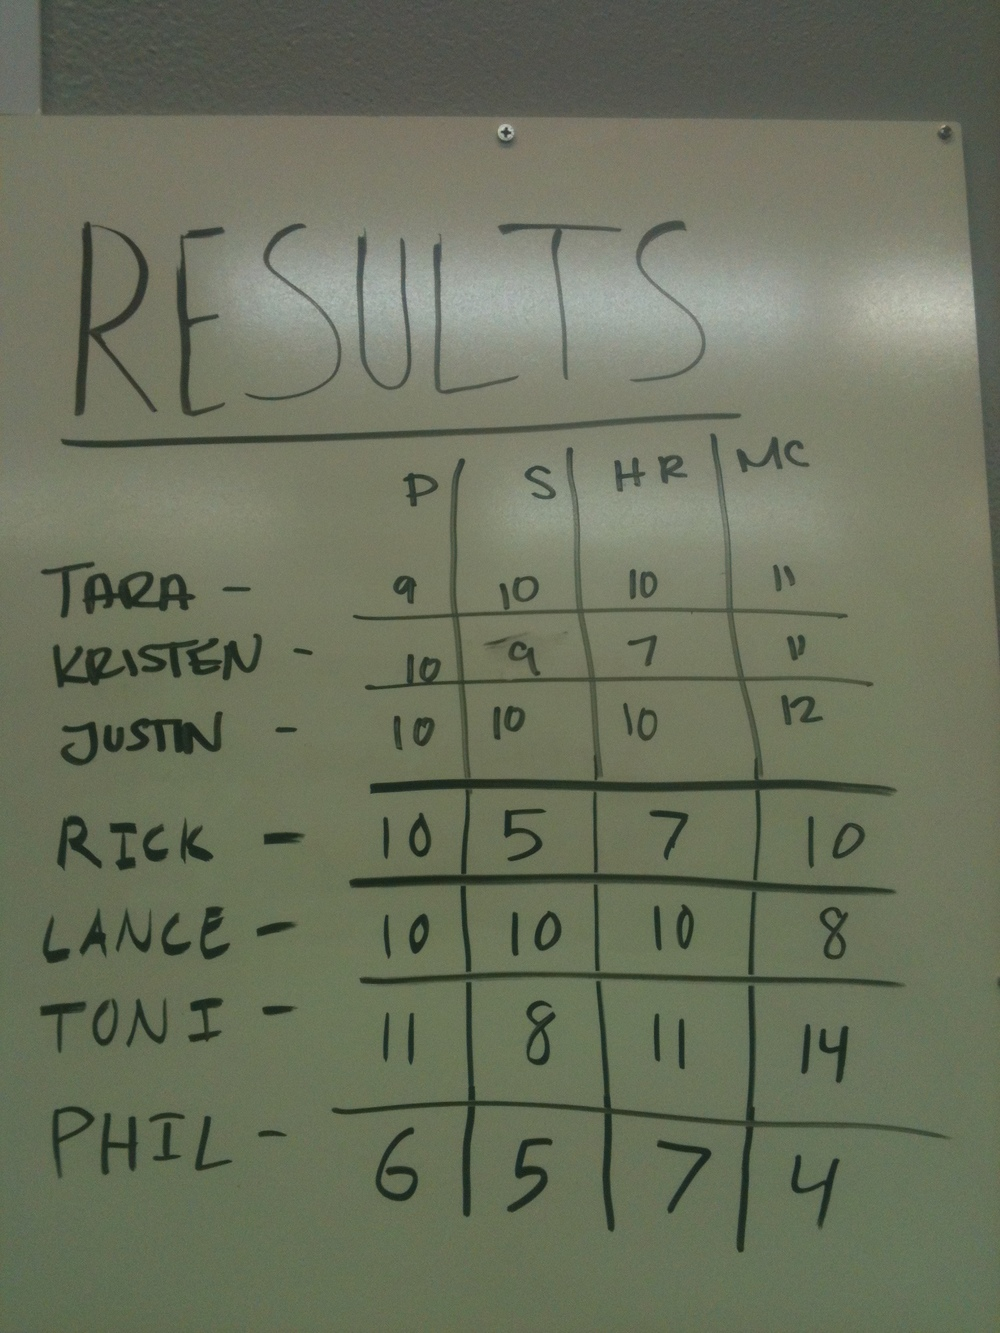 Tabata Scores from 5/22 WOD